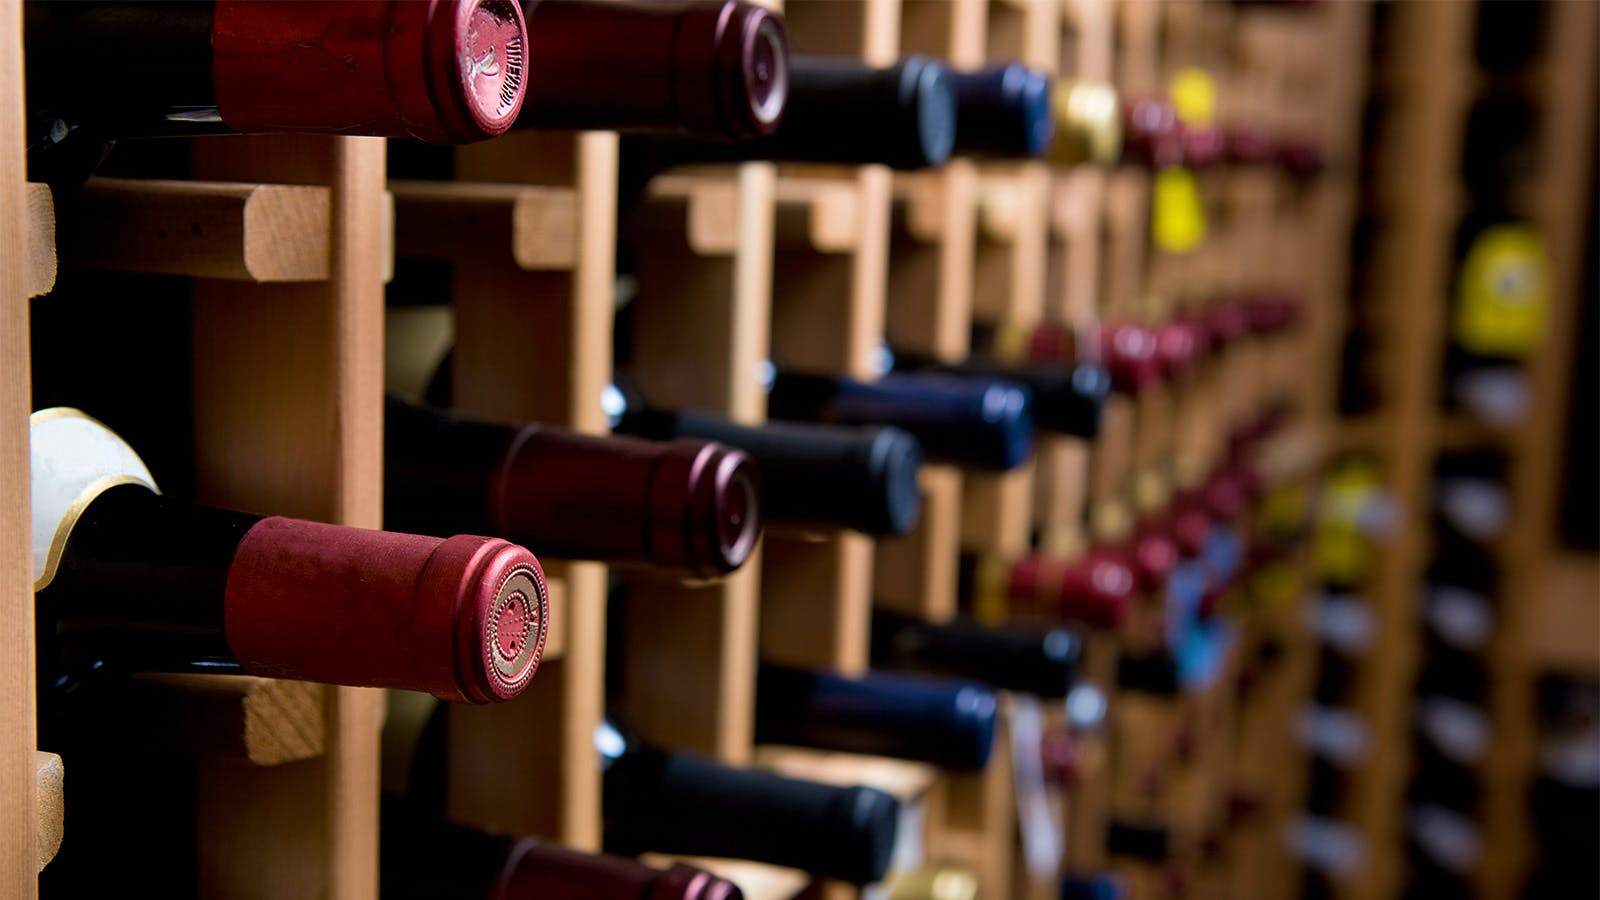 Check Out Some Of These Amazing Wine Tips